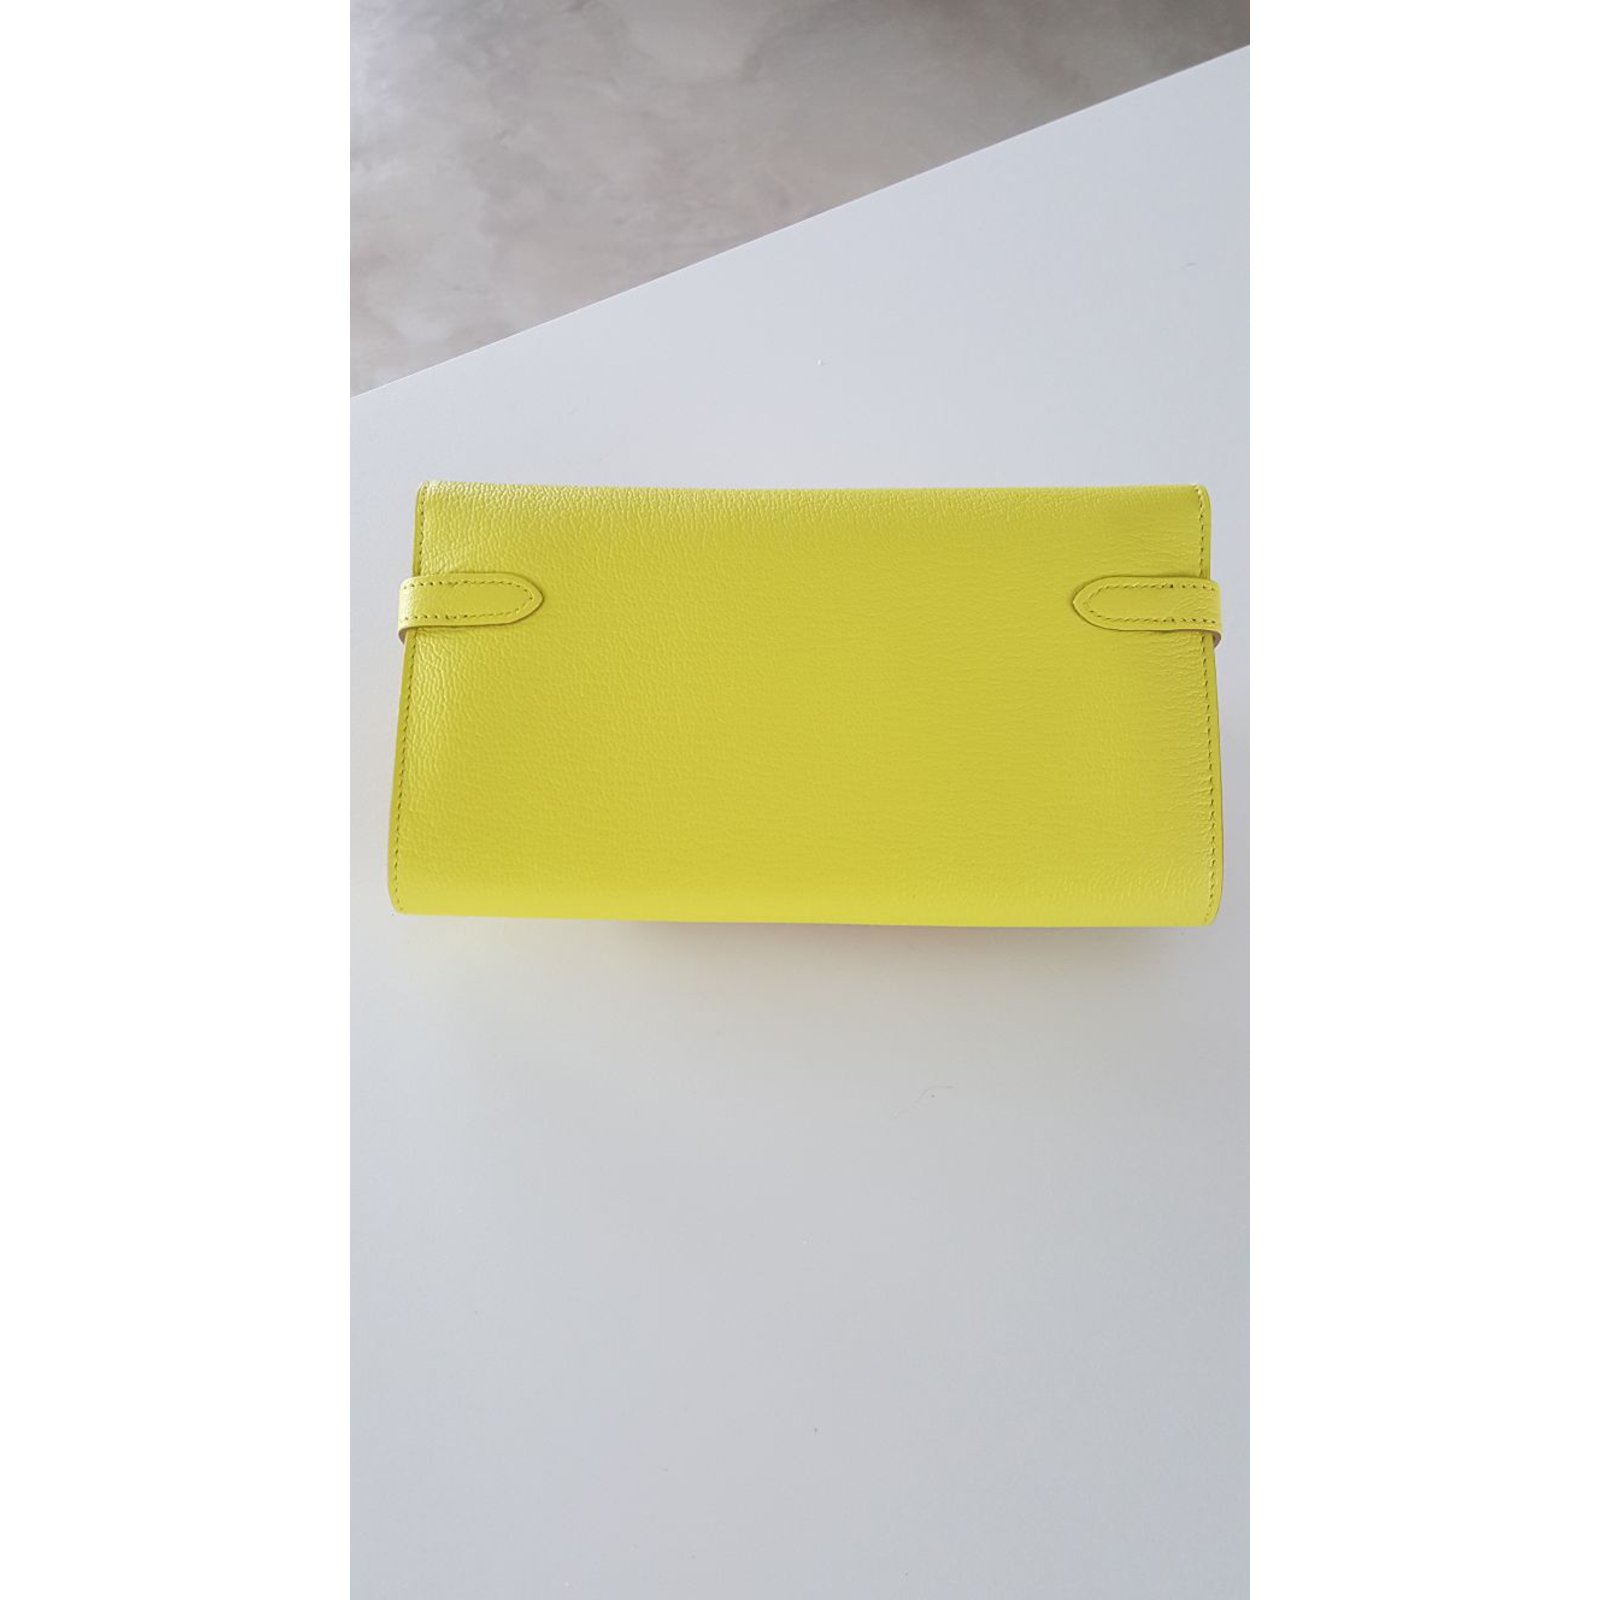 hermes kelly wallet yellow - photo #22